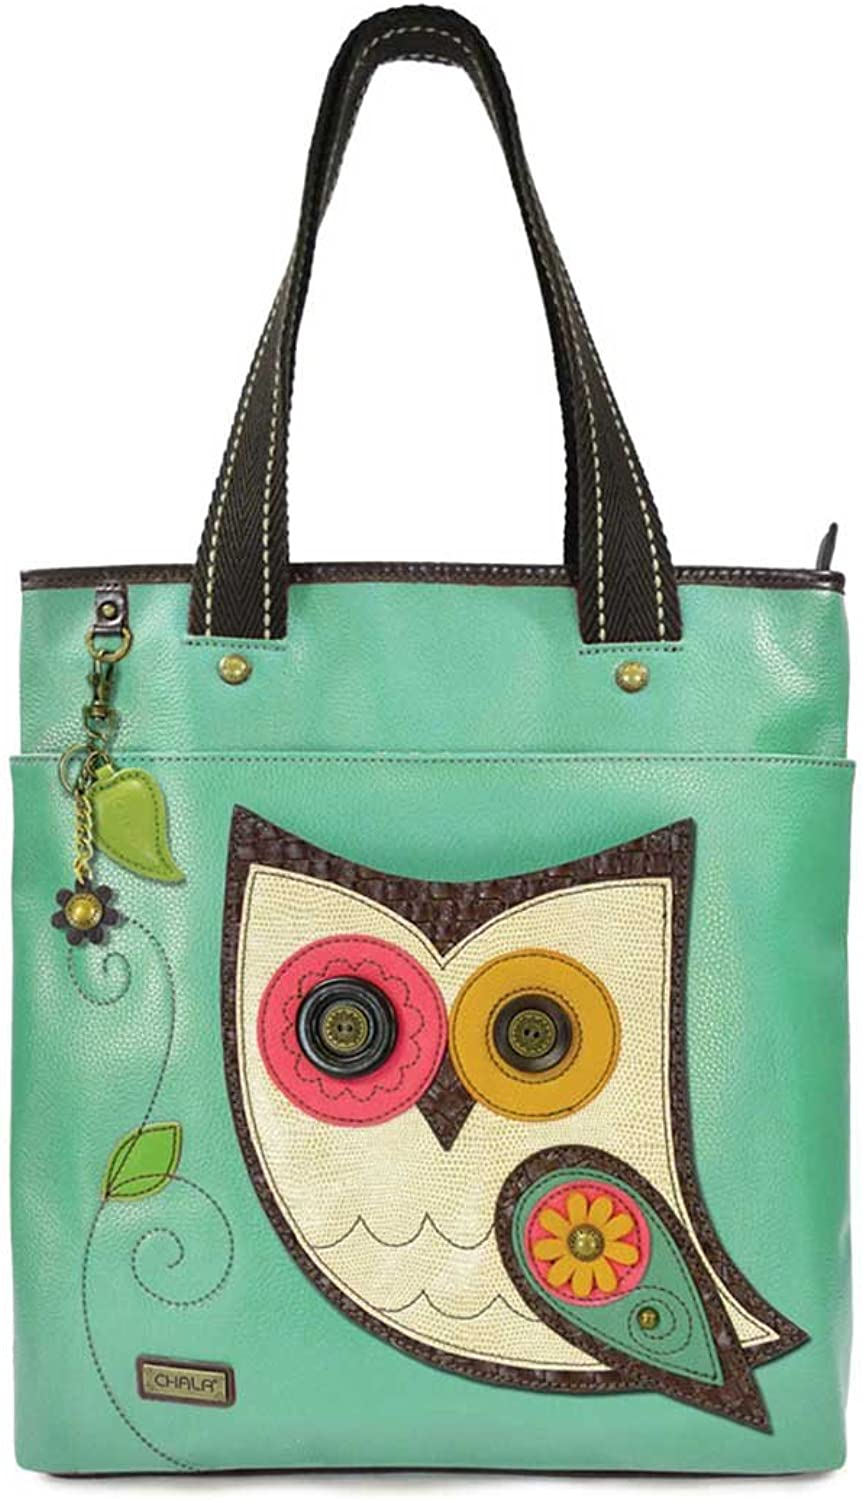 Chala Every Day Zip Tote, Detachable Key Chain Charm, Faux Leather, Canvas Handles, Animal Prints